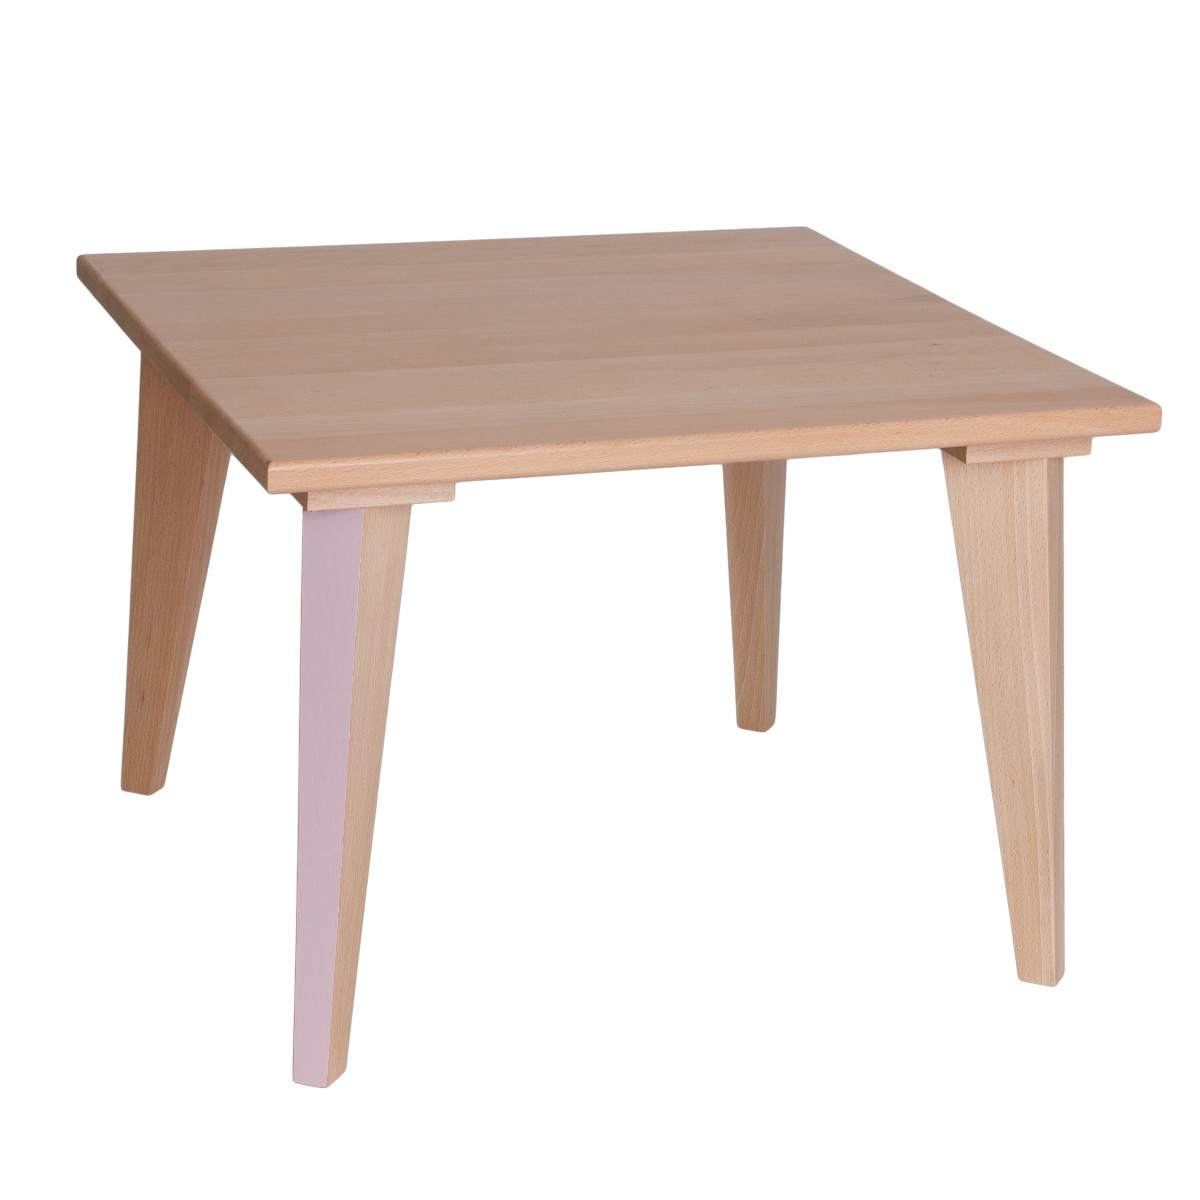 Table basse mini boudoir rose p le paulette sacha for Table basse et haute a la fois